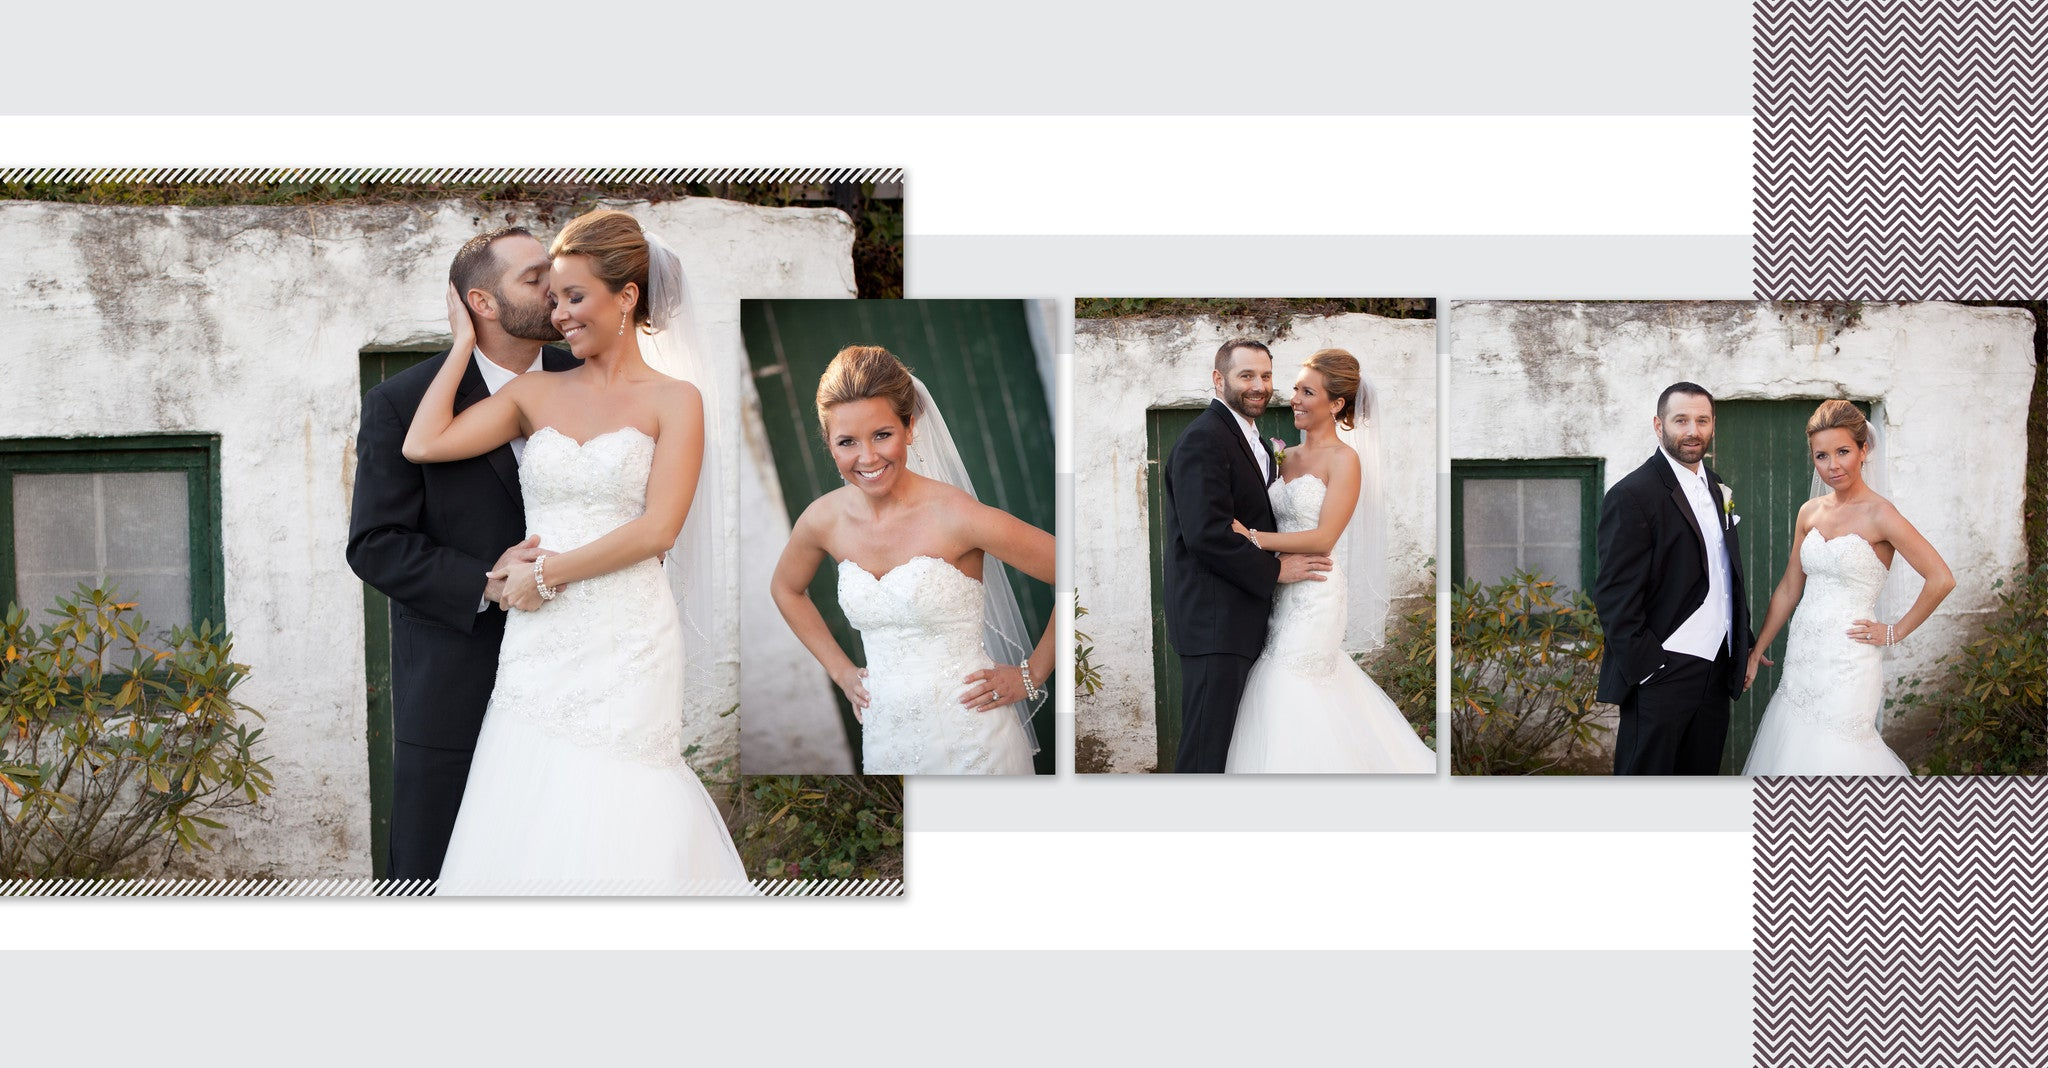 Complete your wedding day with a personalized video